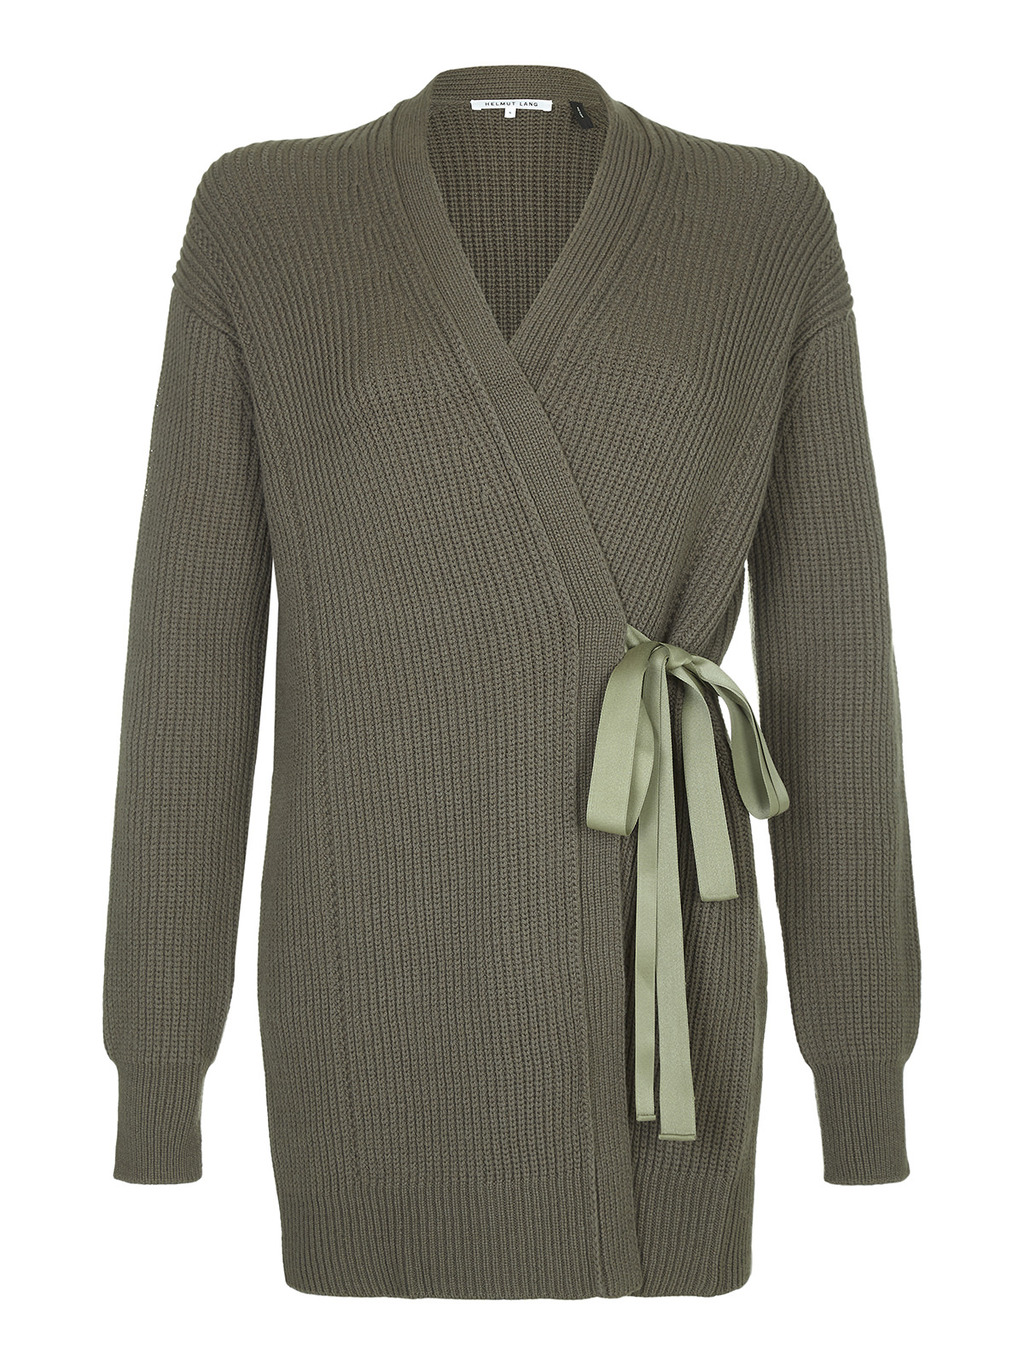 Cardigan - neckline: v-neck; pattern: plain; style: wrap; predominant colour: khaki; occasions: casual, creative work; fibres: wool - 100%; fit: standard fit; length: mid thigh; waist detail: belted waist/tie at waist/drawstring; sleeve length: long sleeve; sleeve style: standard; texture group: knits/crochet; pattern type: knitted - fine stitch; season: a/w 2016